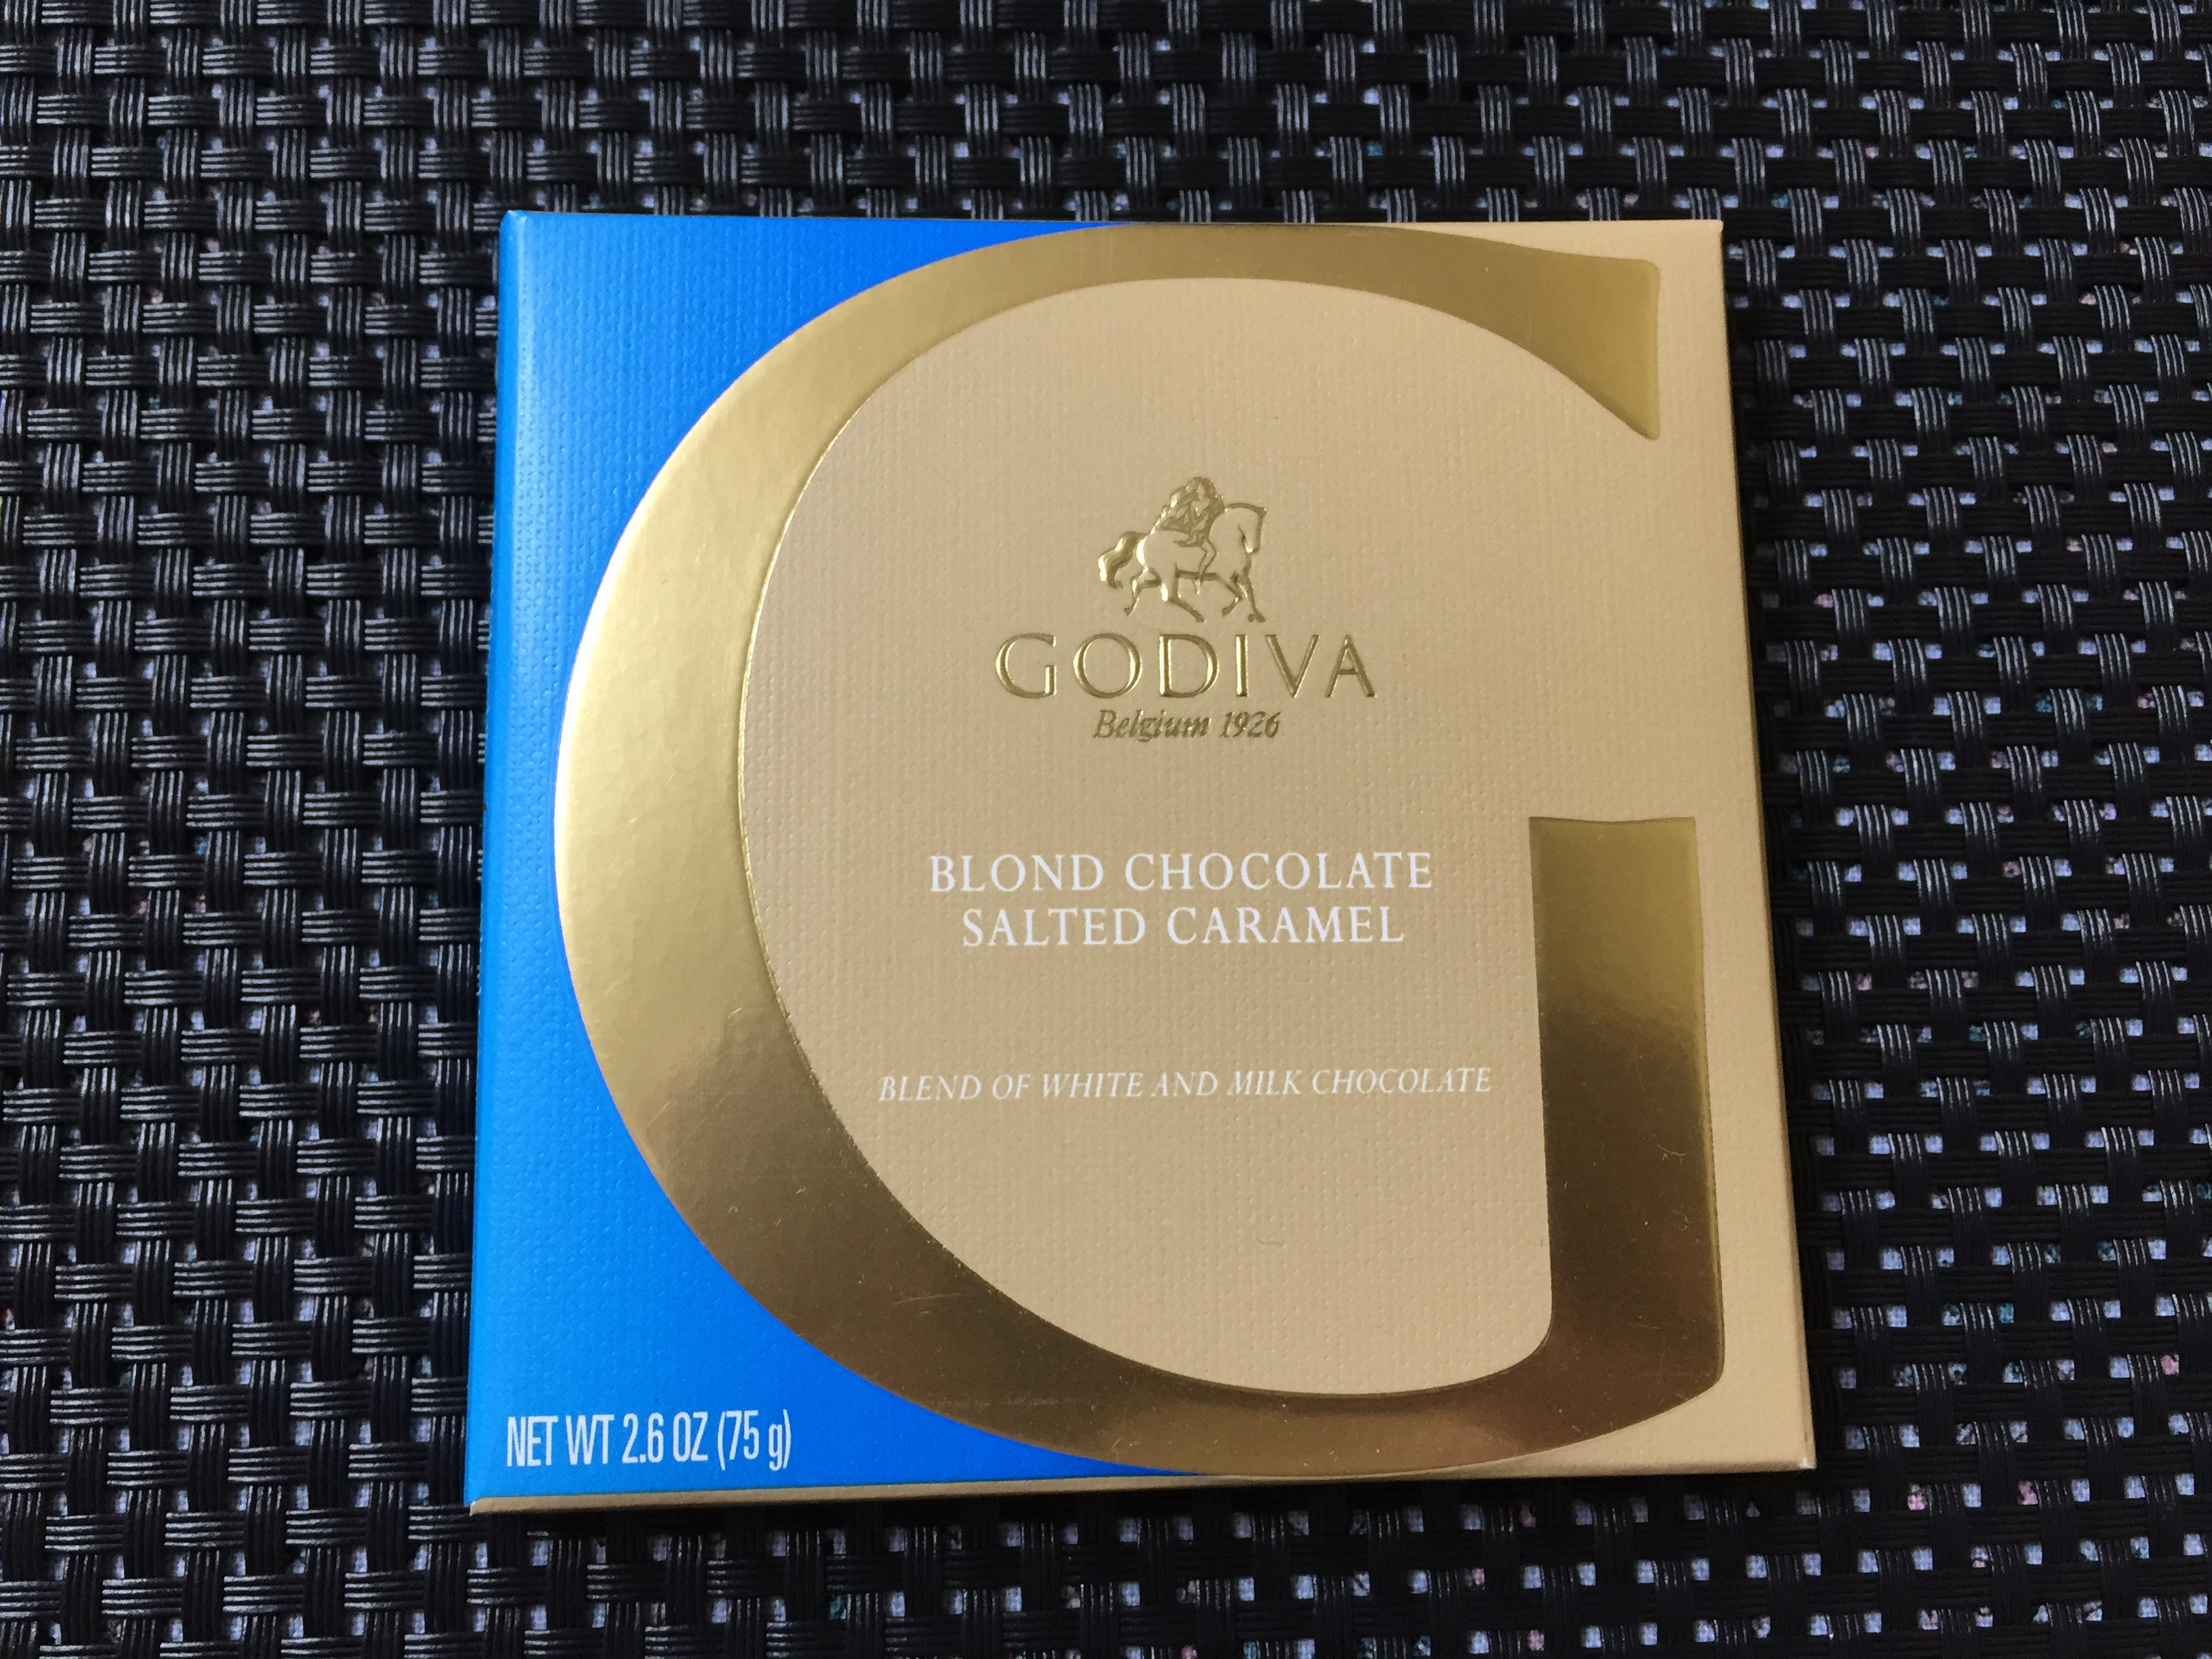 [GODIVA] BLOND CHOCOLATE SALTED CA..